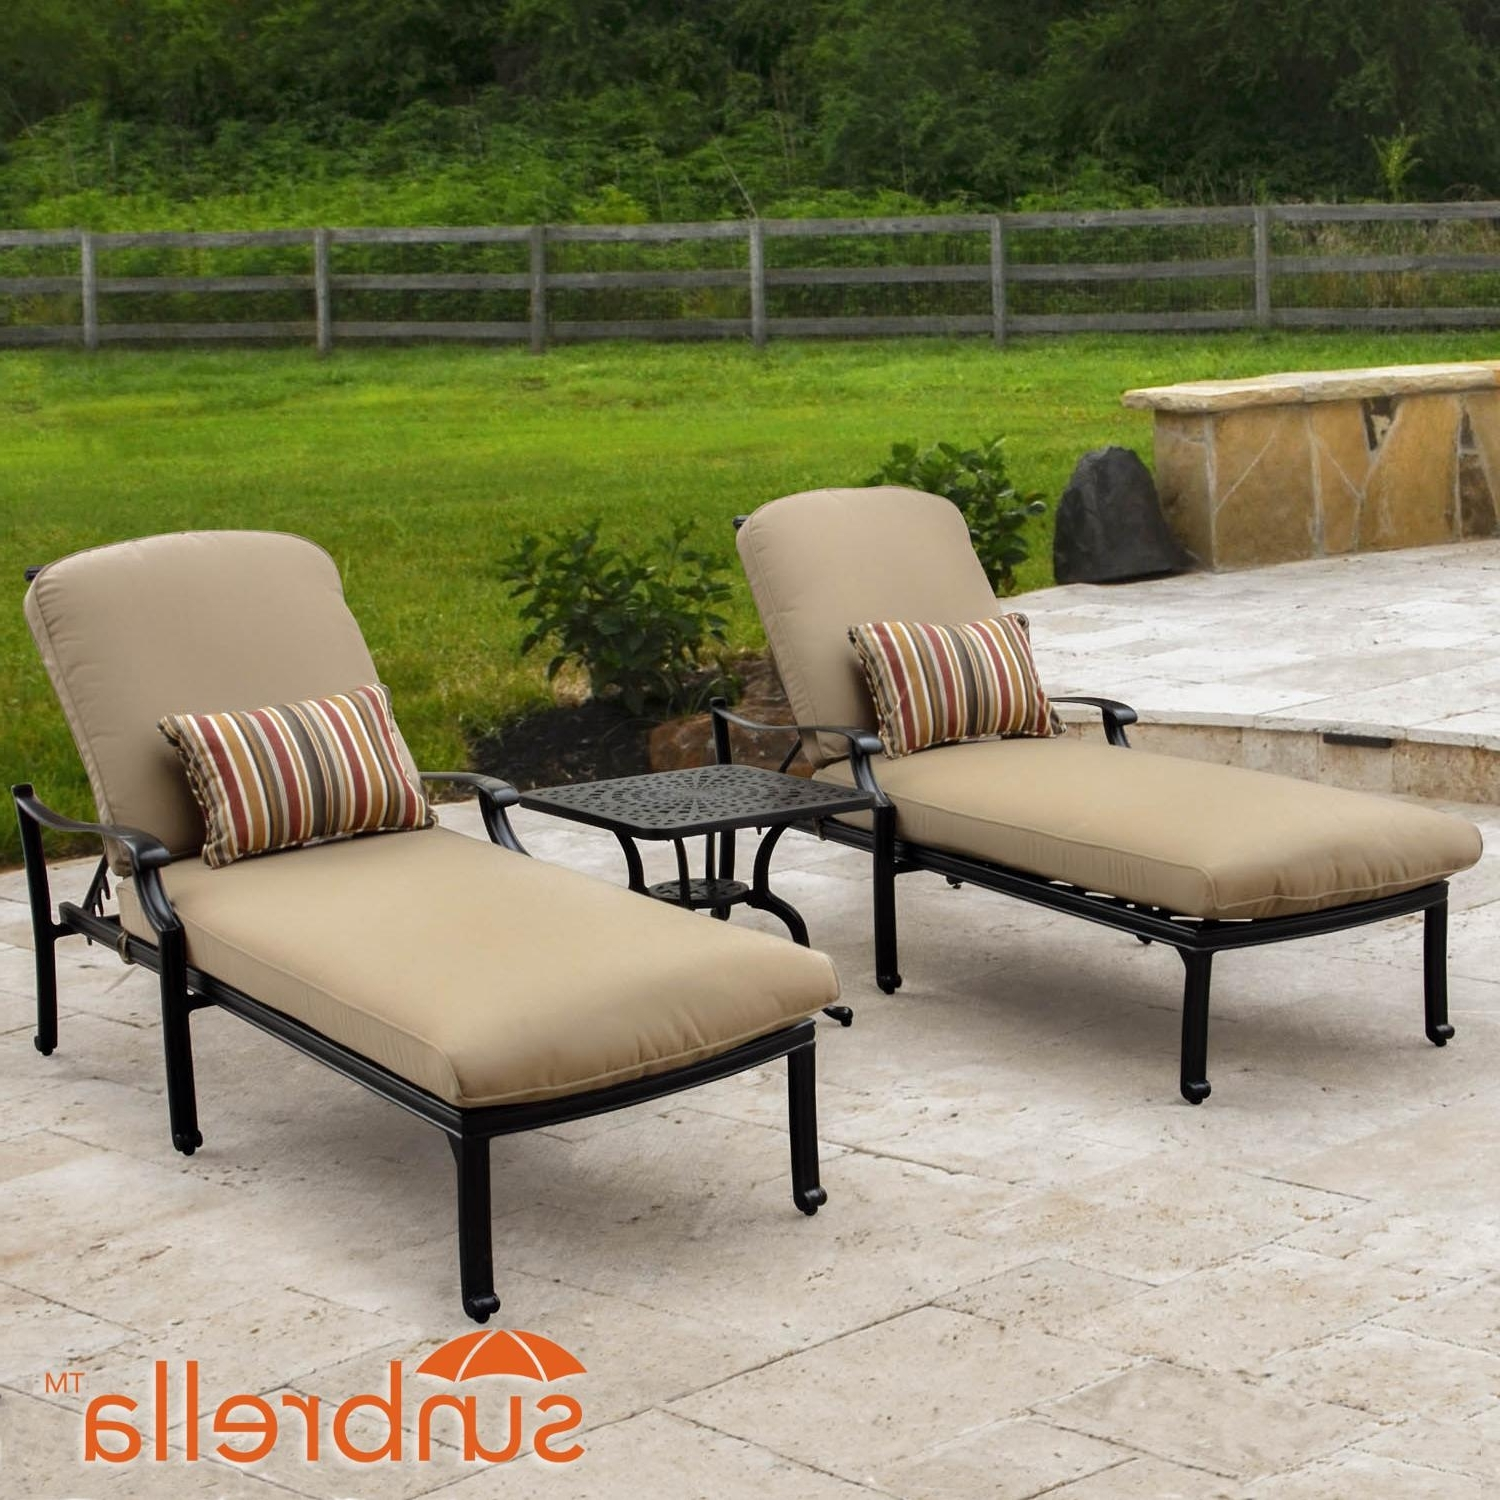 Bocage 3 Piece Cast Aluminum Patio Chaise Lounge Set W/ Sunbrella Throughout Well Known Chaise Lounges For Patio (View 4 of 15)